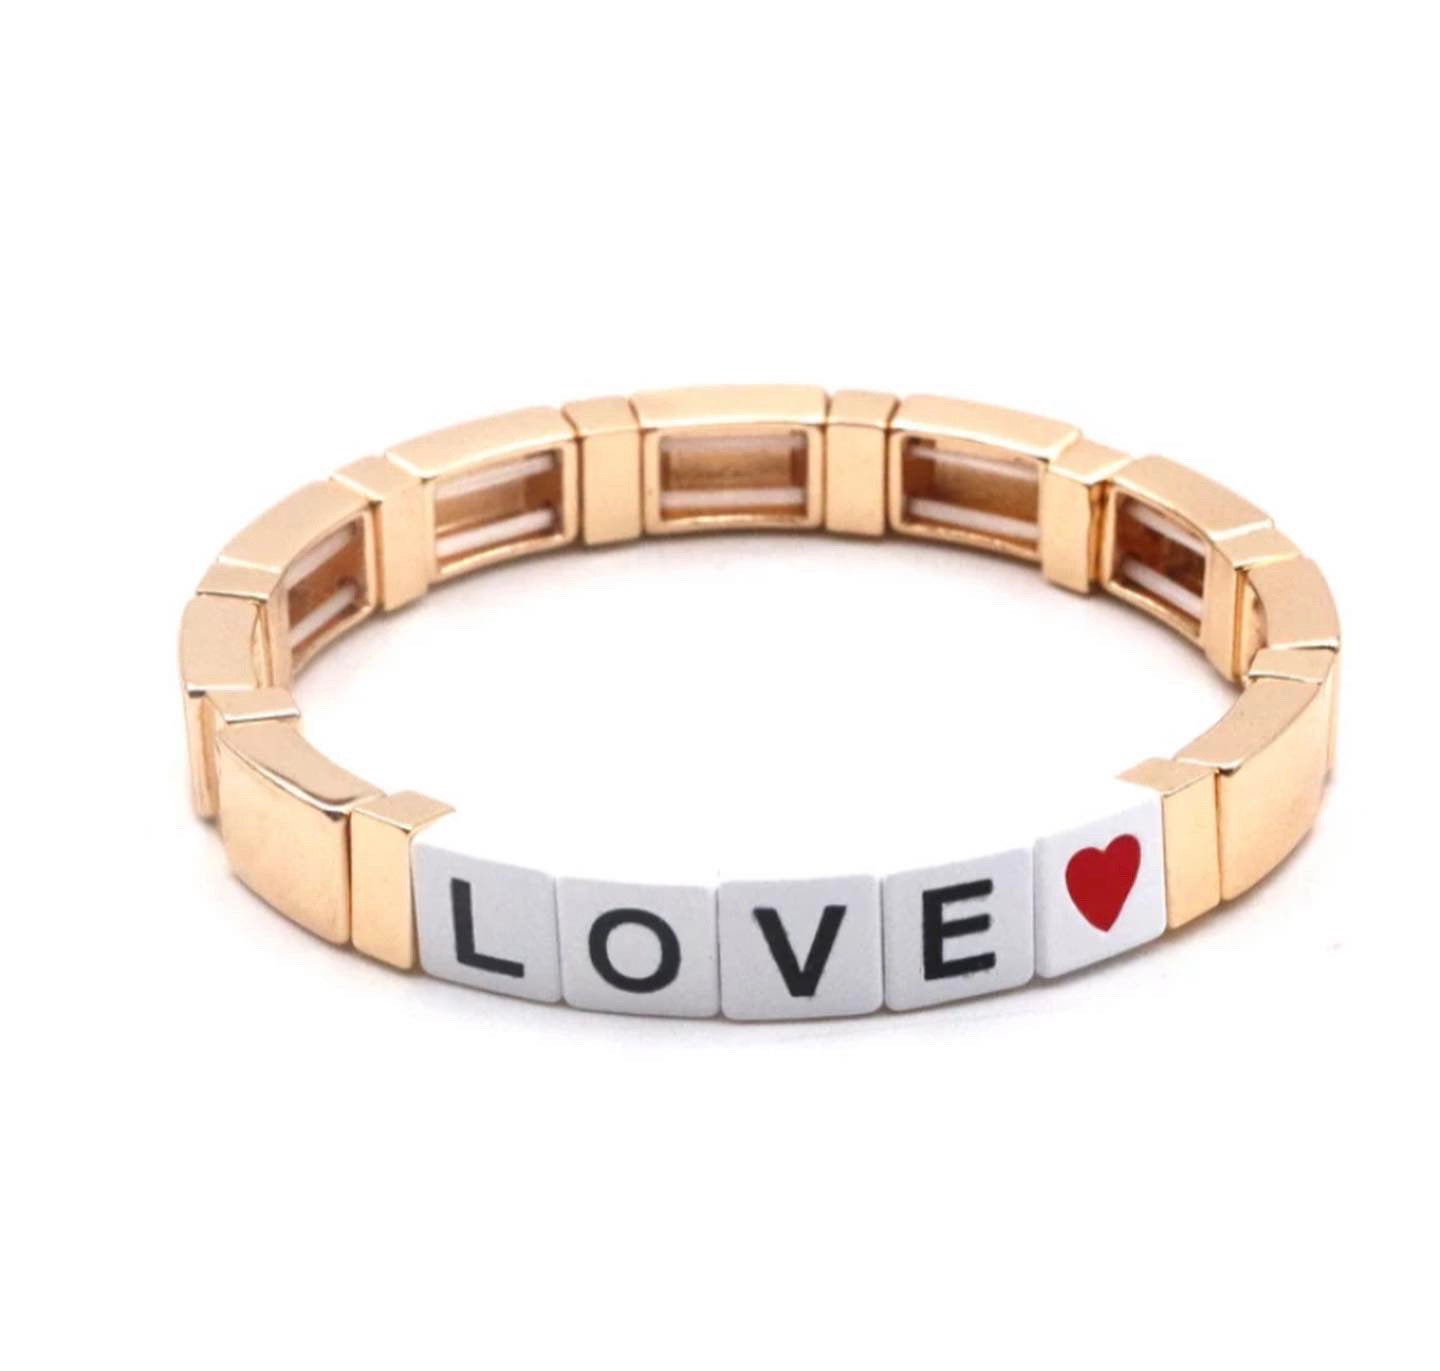 LOVE GOLD TILE BRACELET PW